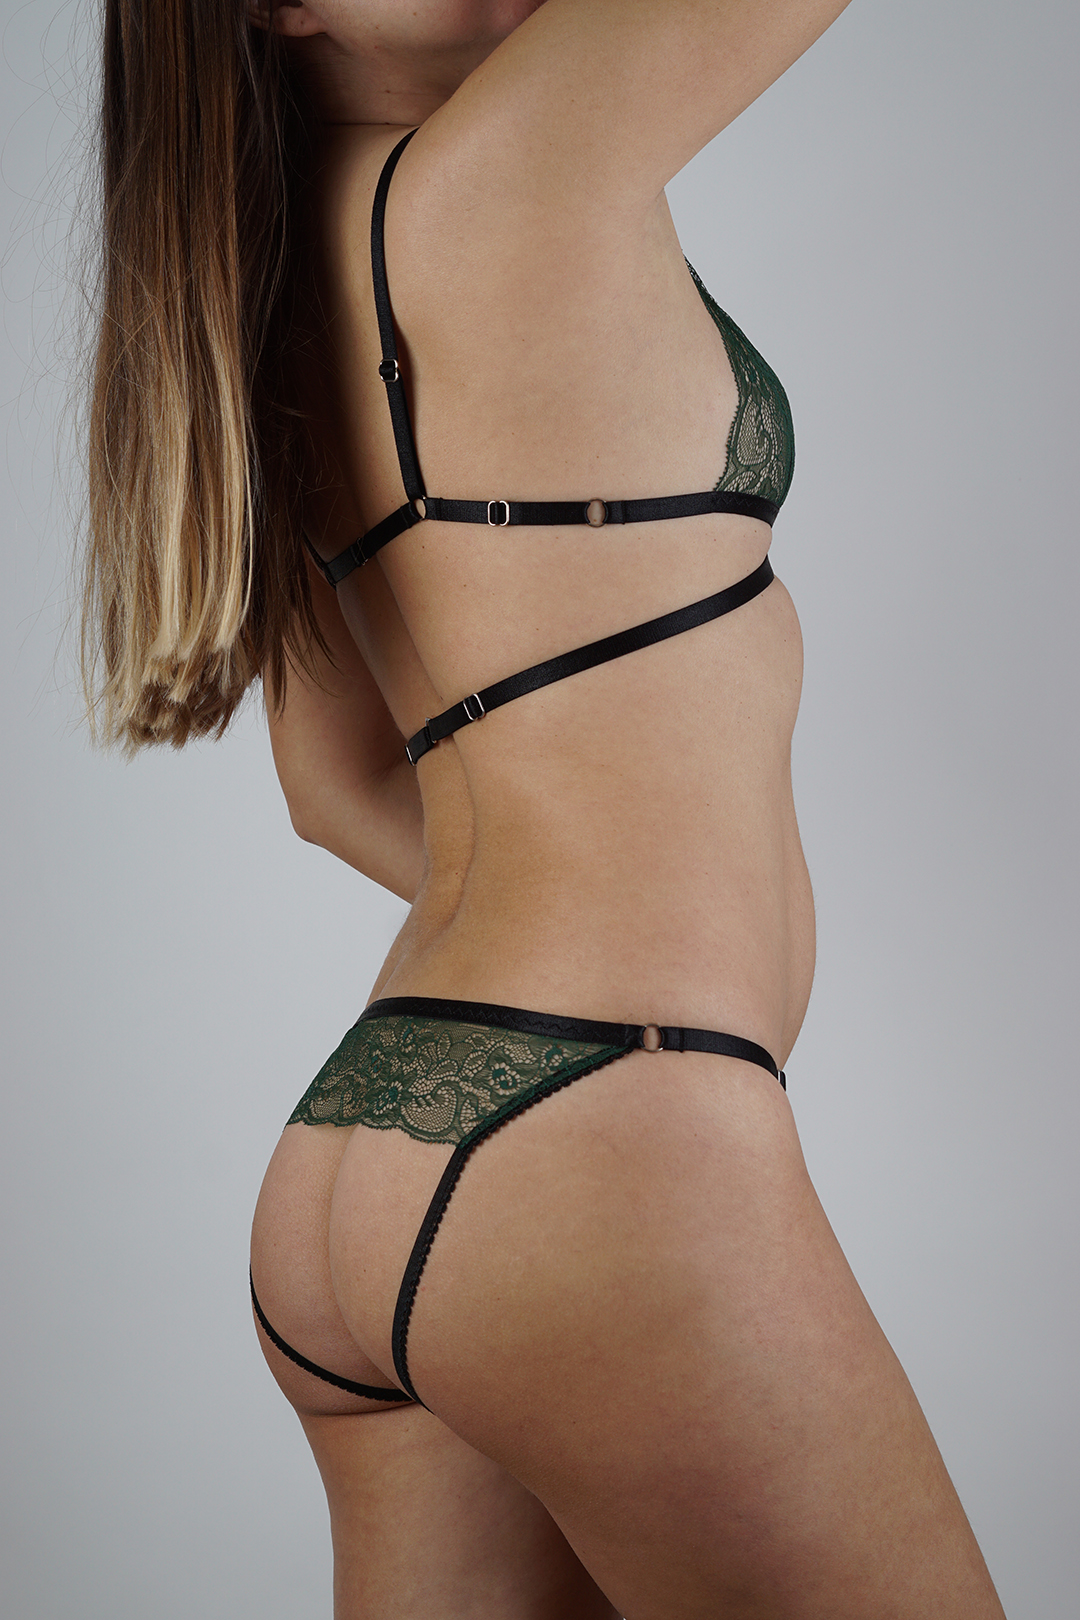 Green lingerie set with strappy bralette and ouvert panties - BlackWings Lingerie